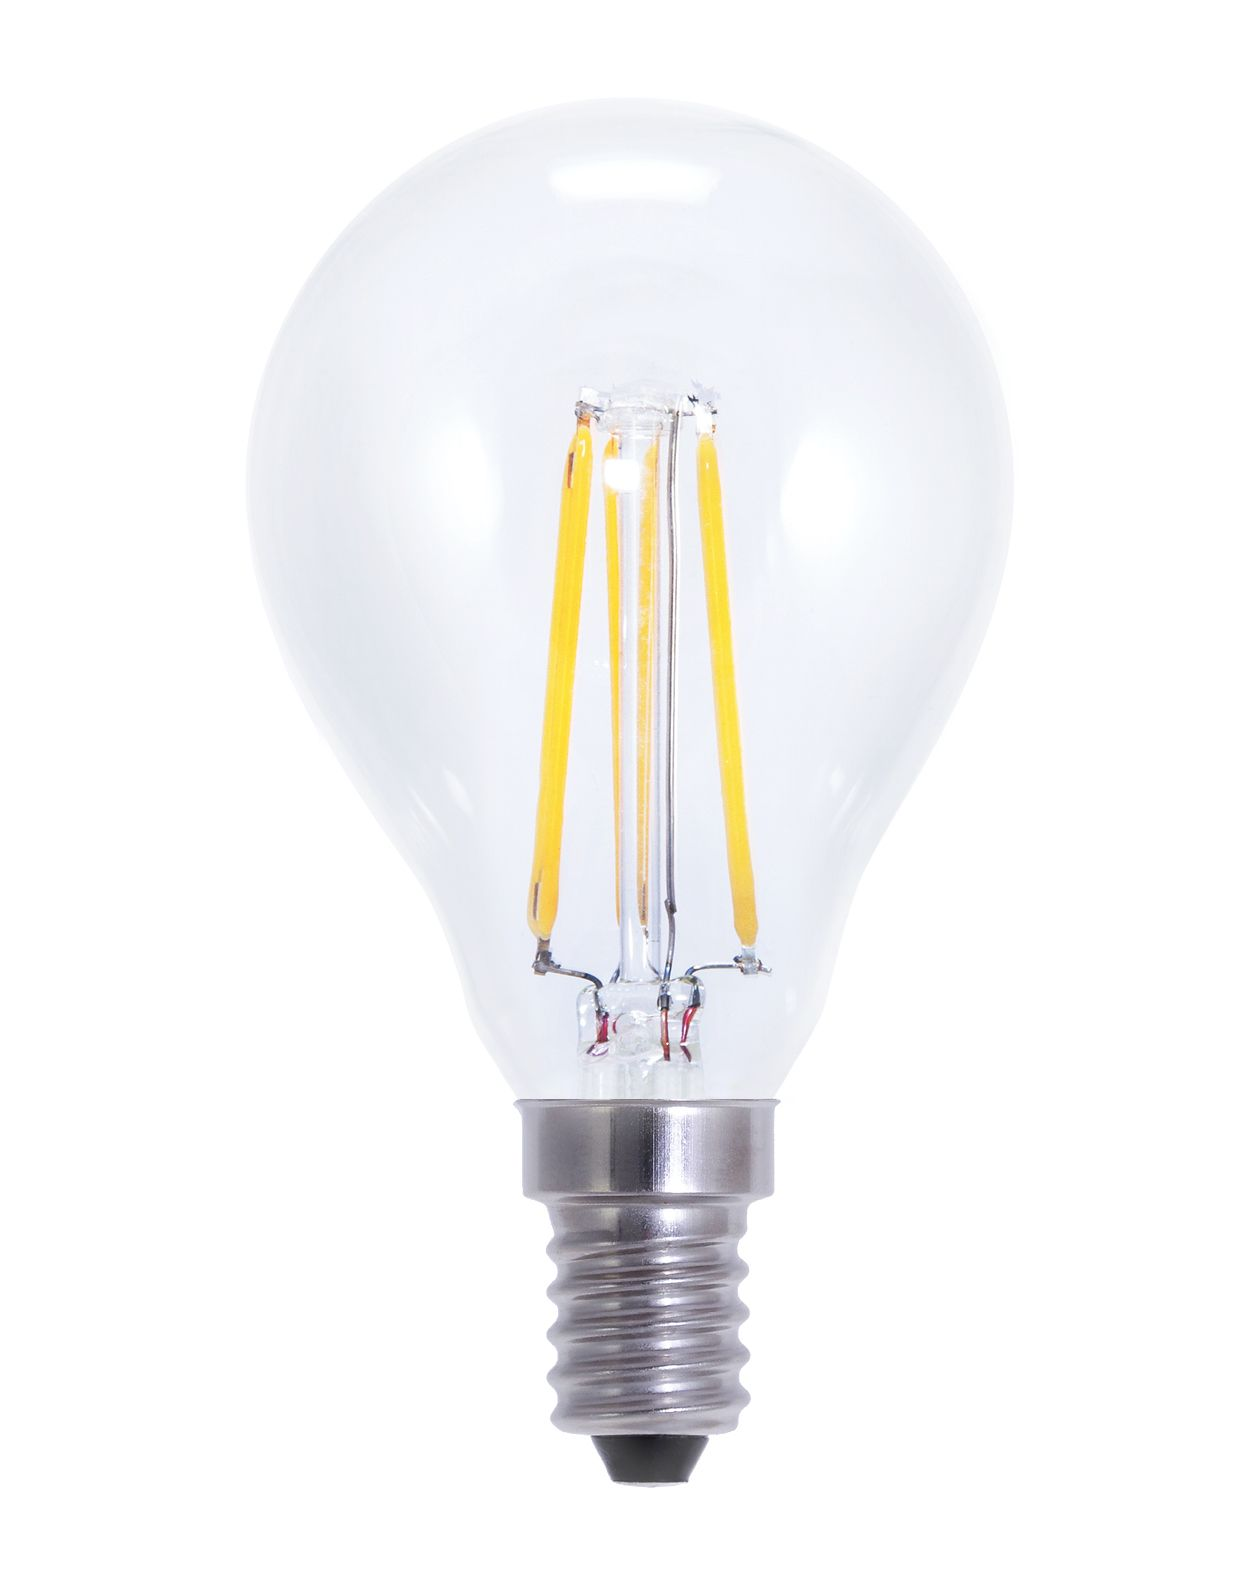 LED lamp 3.5W E14 filament Segula dimbaar 50323